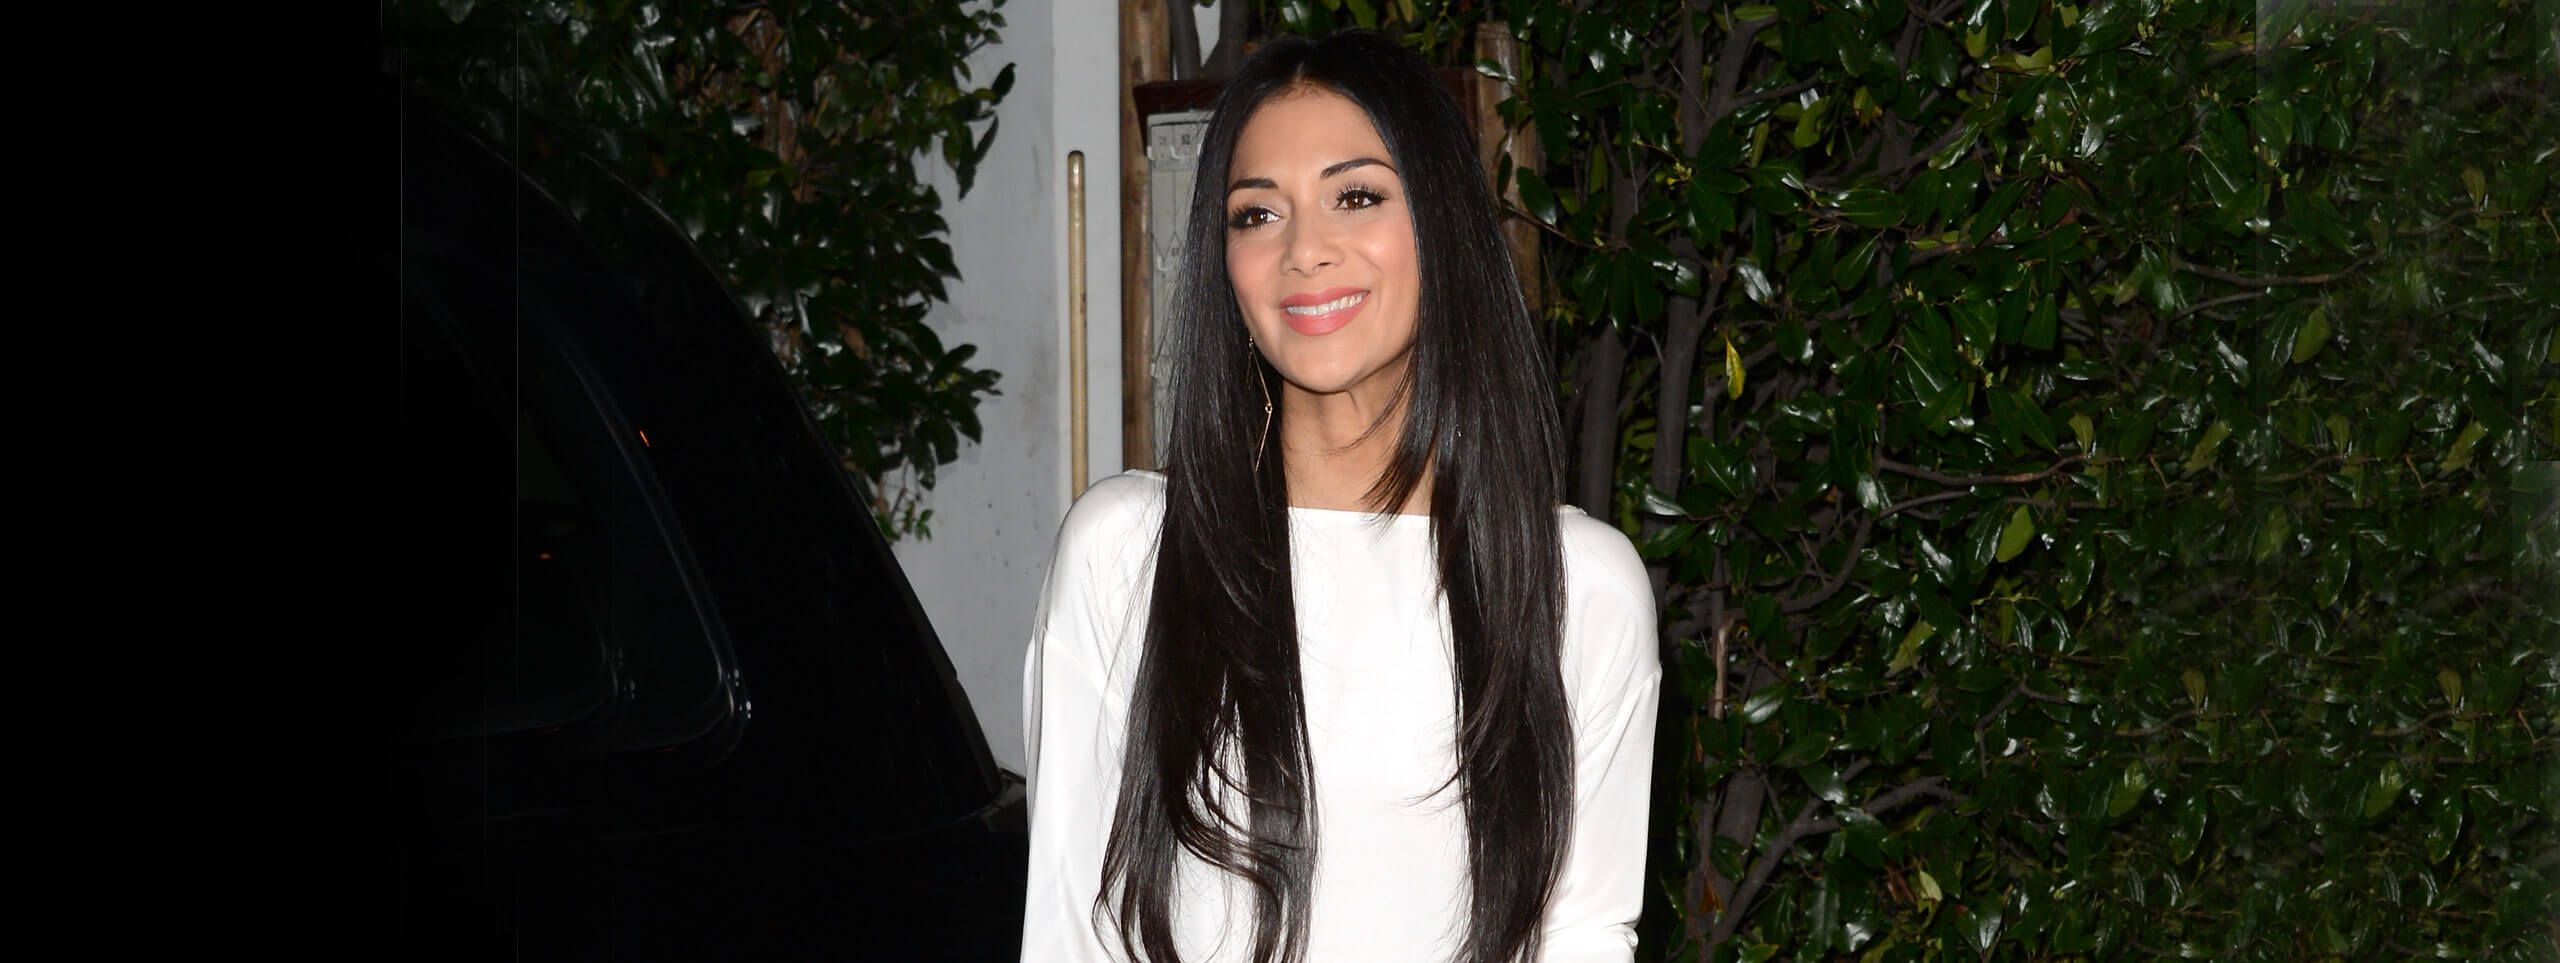 Celebrity with long hairs extensions, a trendy women hairstyle